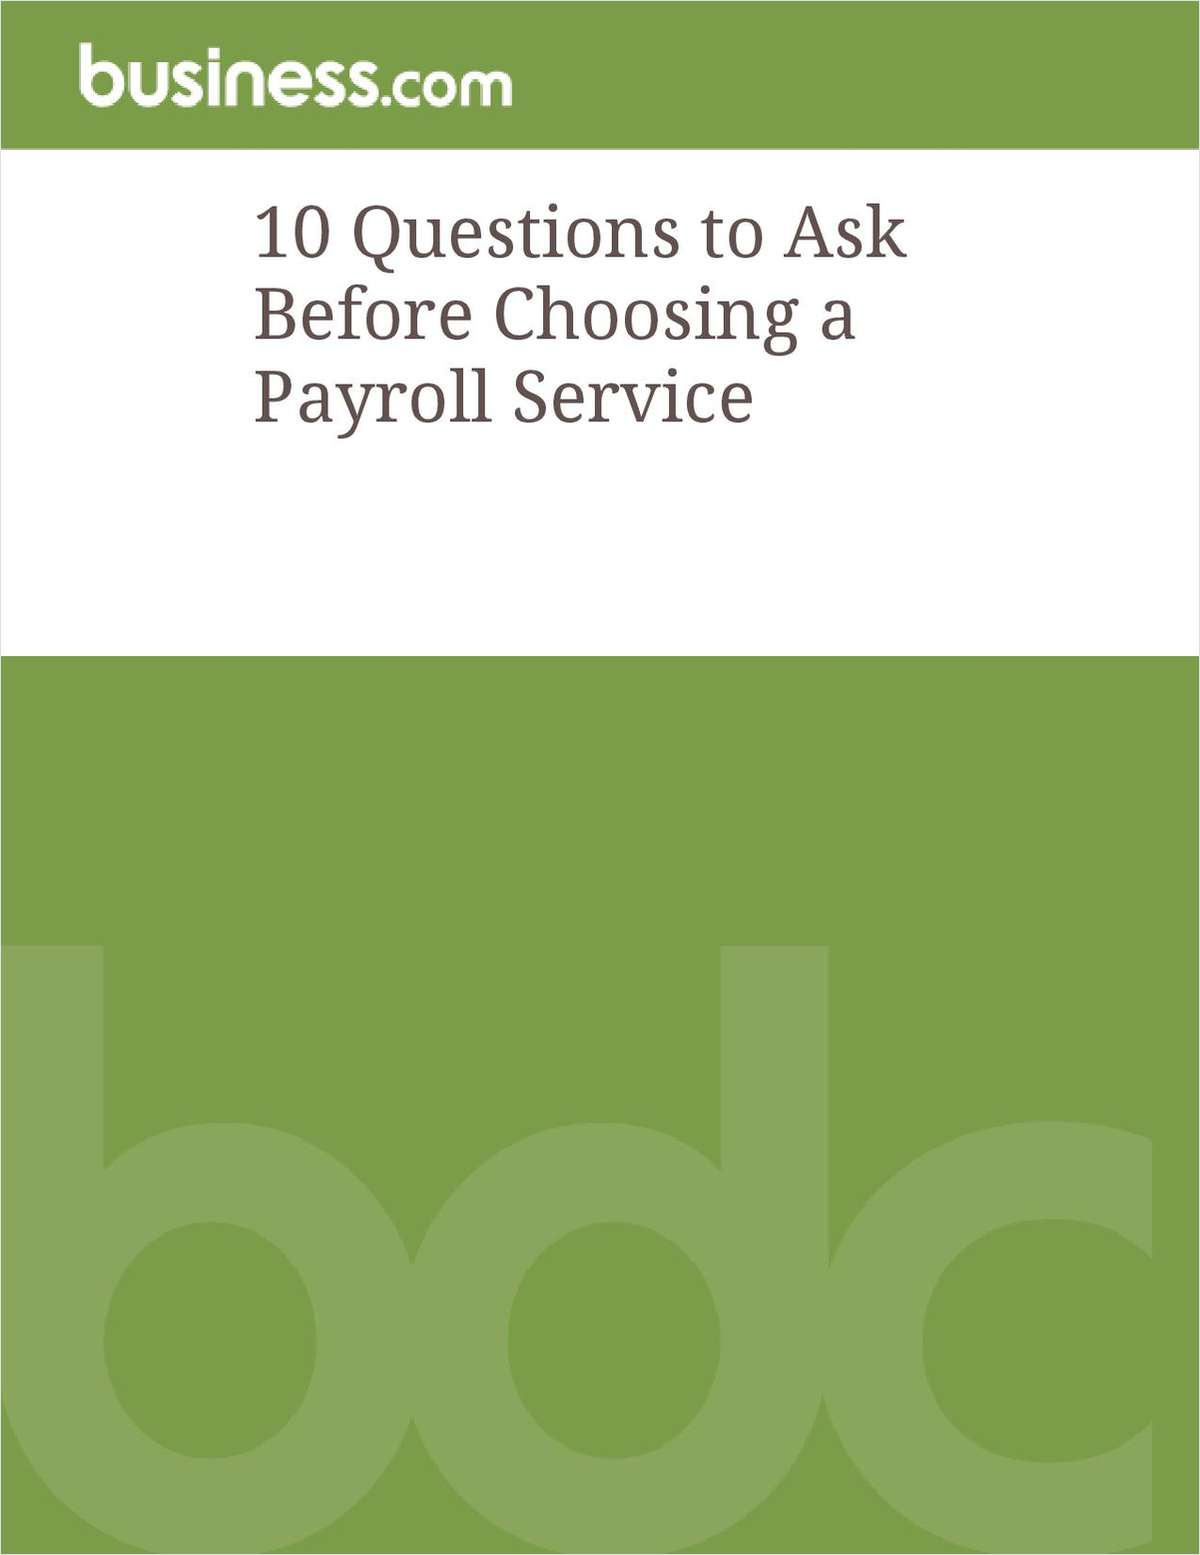 10 Important Questions to Ask Before Choosing a Payroll Service